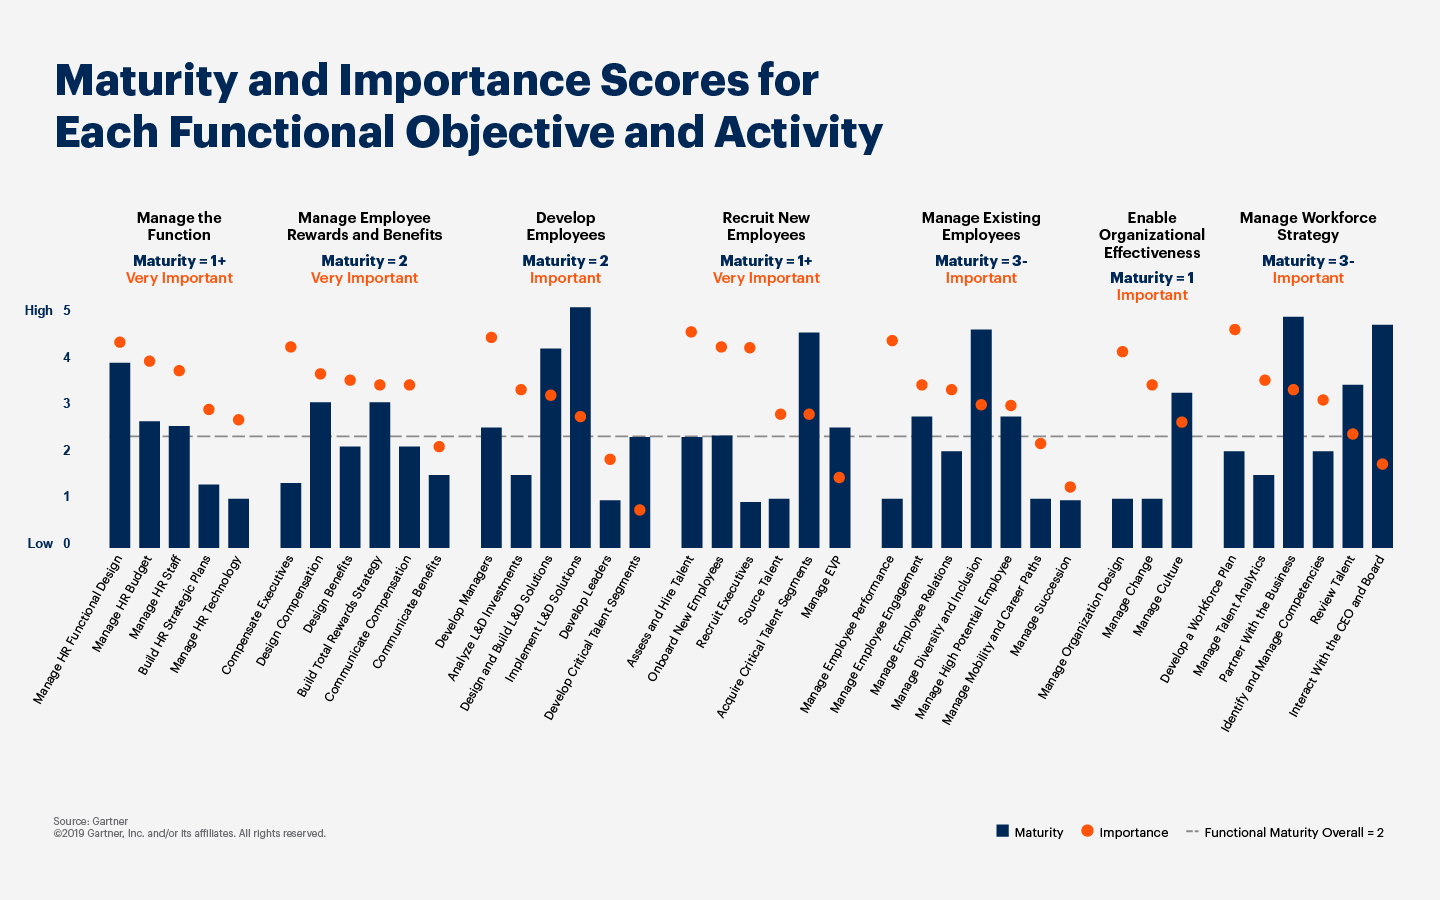 Bar graph displaying the Maturity and Importance Scores for Each Functional Objective and Activity.